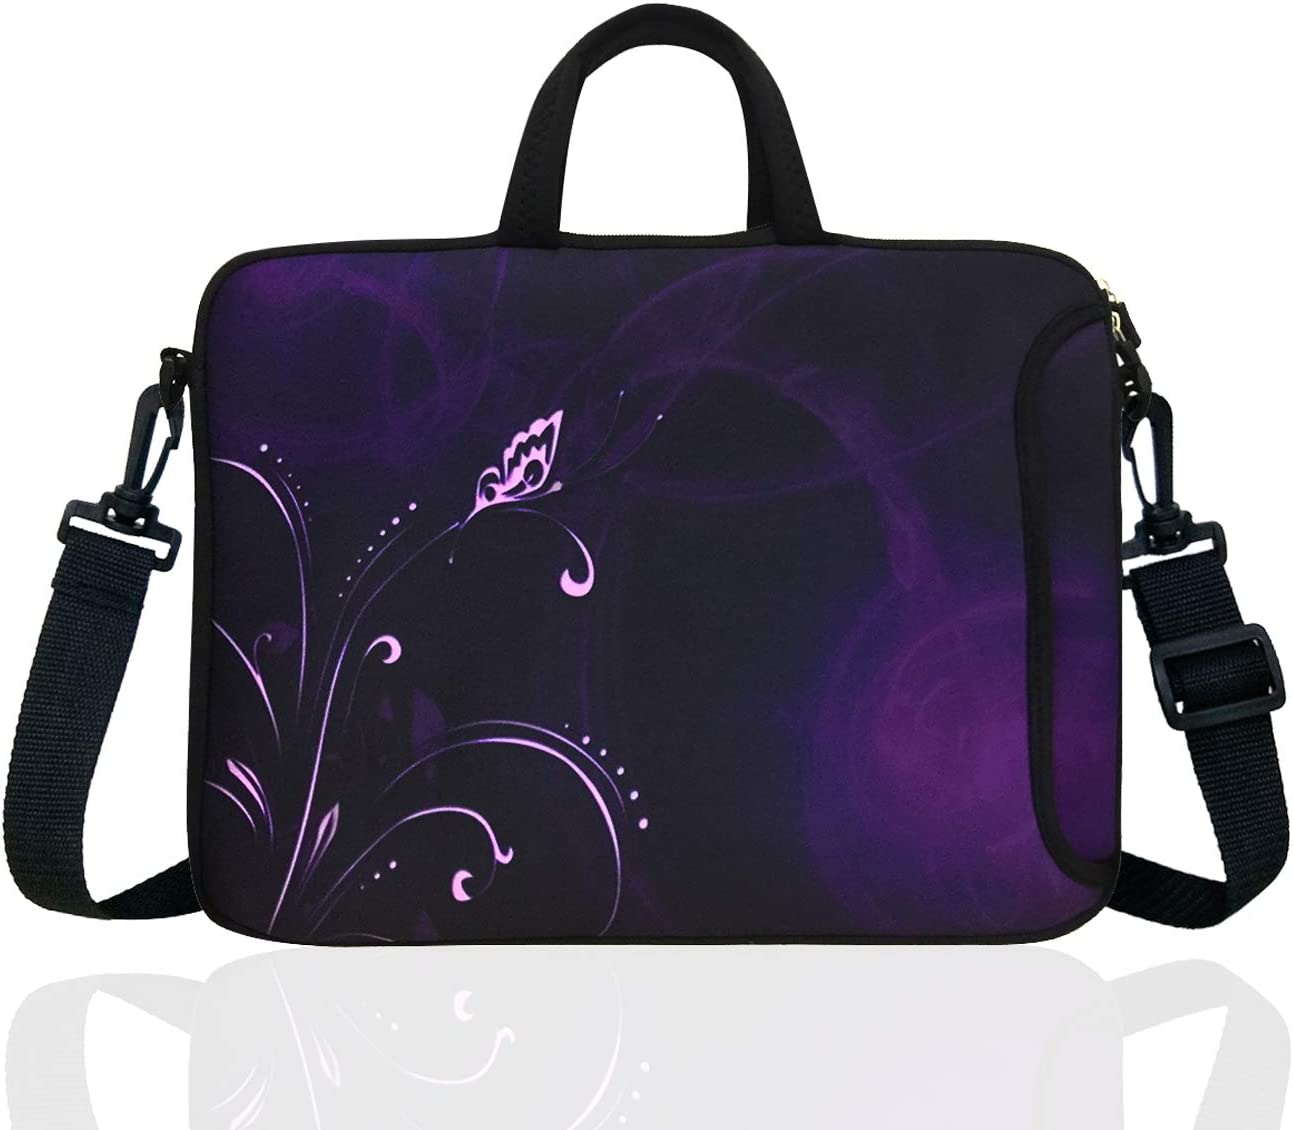 "15-Inch to 15.6-Inch Neoprene Laptop Shoulder Messenger Bag Case Sleeve For 14 14.1 15 15.6"" Inch Acer/Asus/Dell/Lenovo/Thinkpad/HP/Macbook Pro/Air (Purple Flower)"